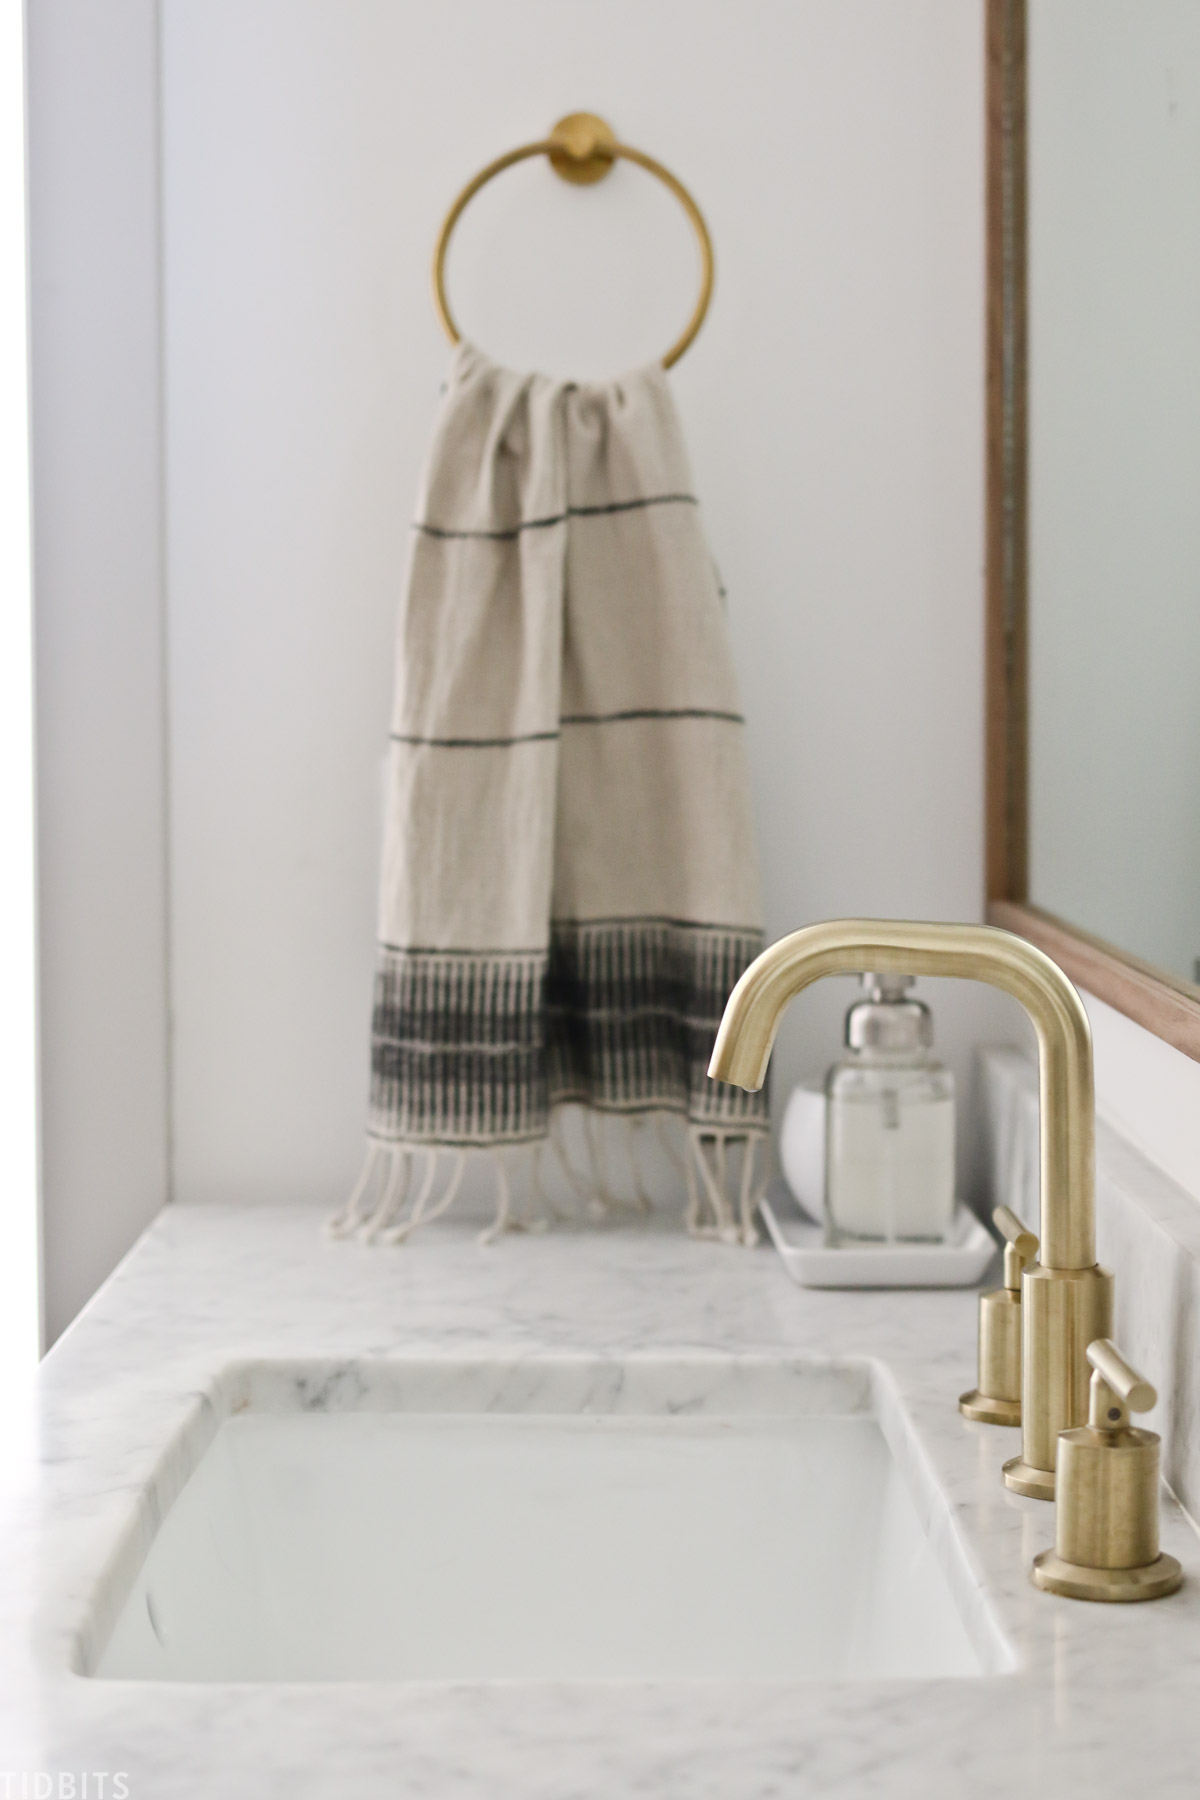 towel hanging from gold colored towel rack